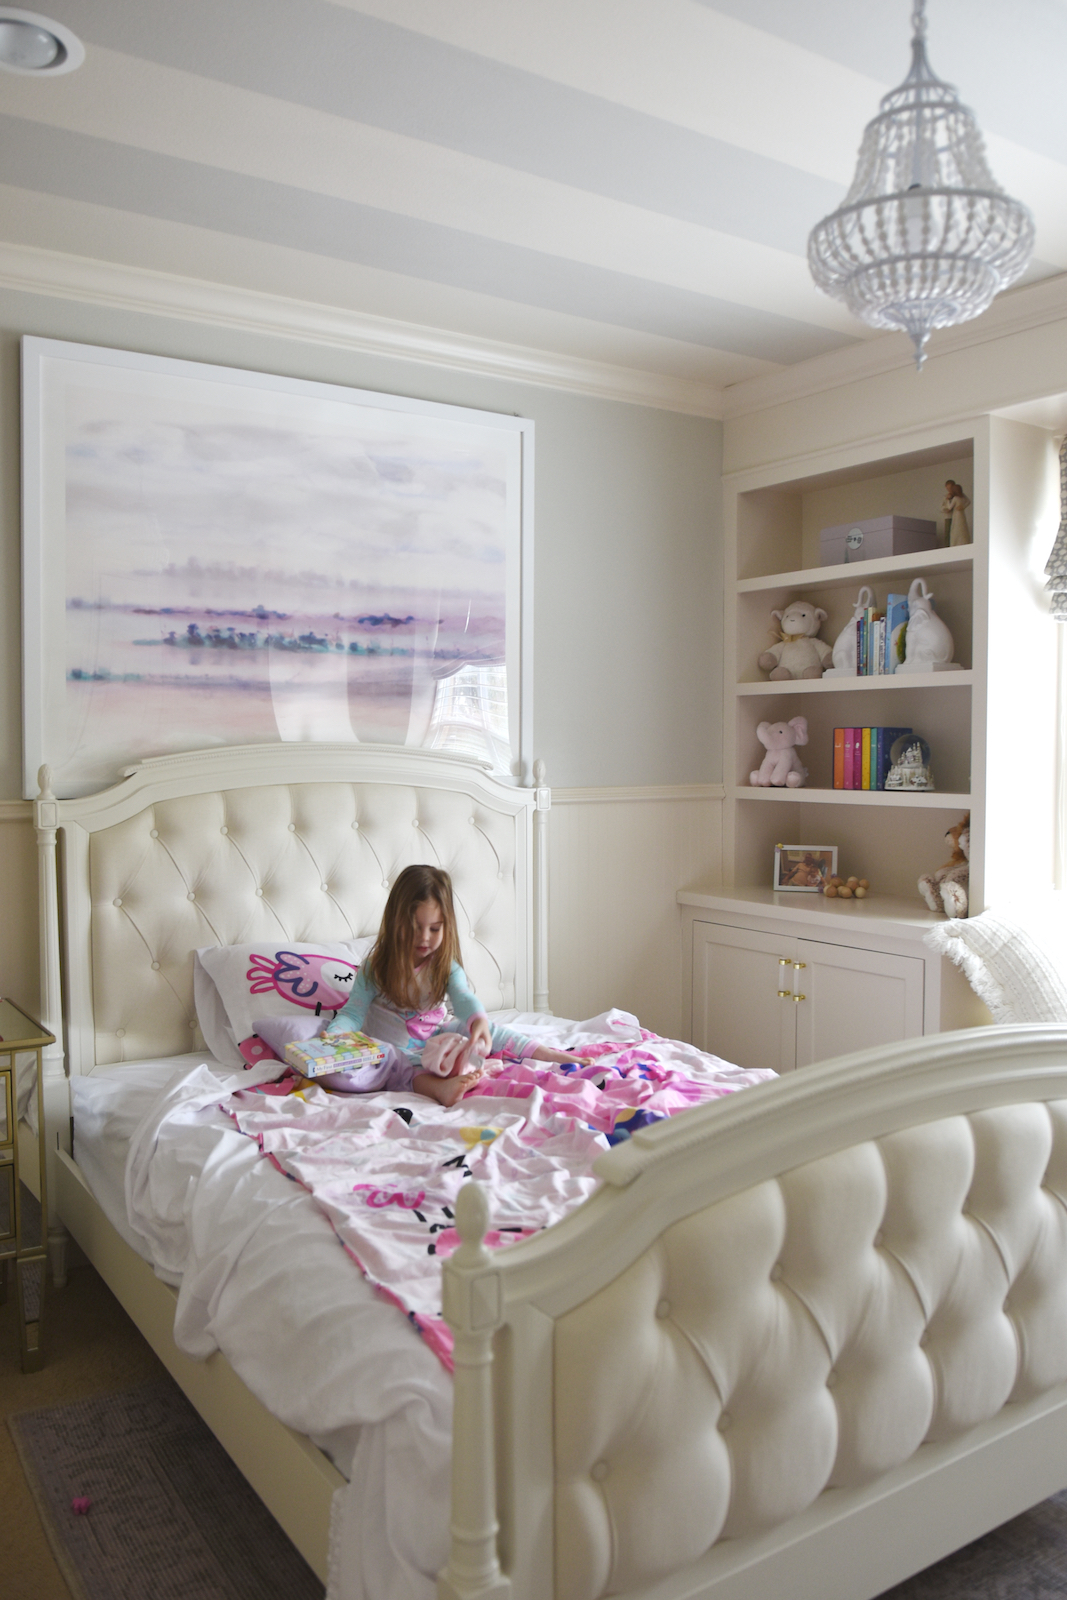 Pottery Barn Kids Tufted Upholstered Bed